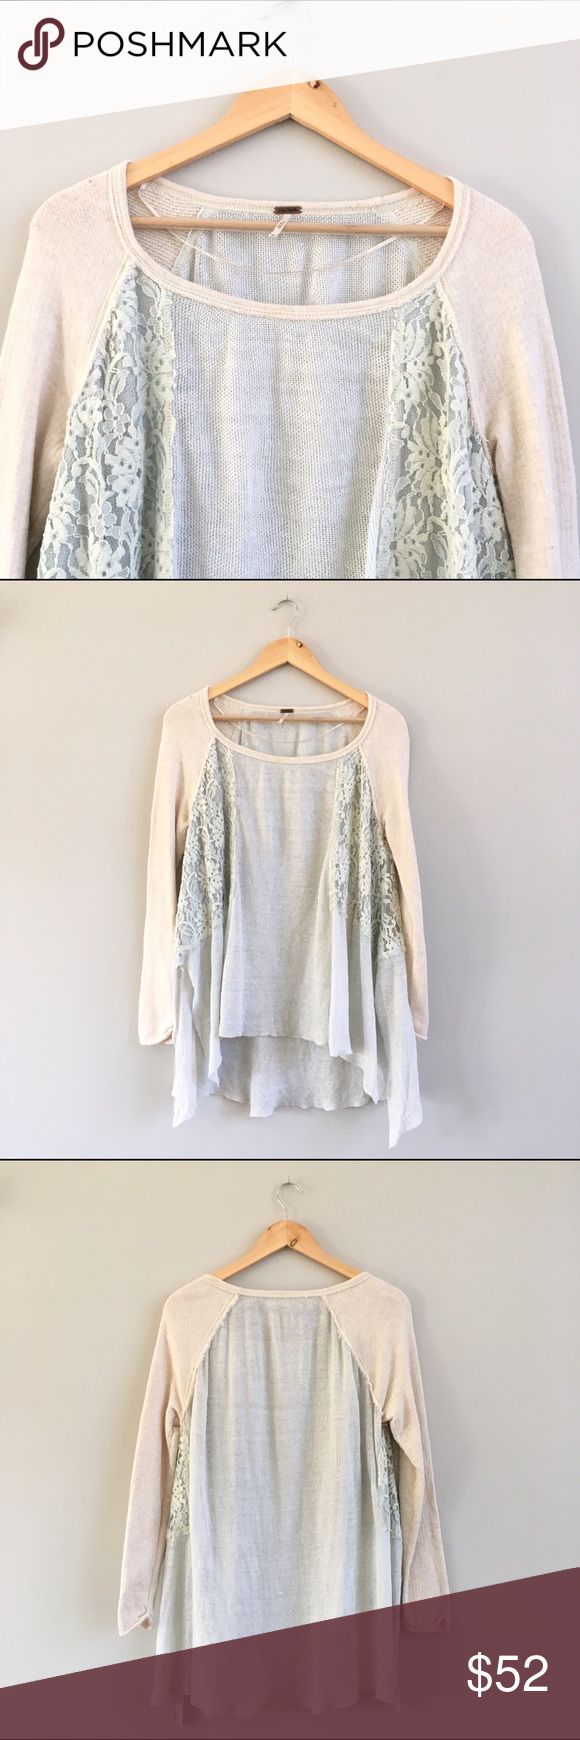 Free People Oversized Lace Baseball Sweater Lovely oversized seafoam/oatmeal baseball style sweater with lace insets on sides, perfect with skinny jeans and ankle booties. Bust: 22in, shoulder to hem: 25in, cotton/linen blend. There's a rip inside, beneath the lace on one side, but it isn't visible when wearing (see last pic). Otherwise great condition. Free People Sweaters